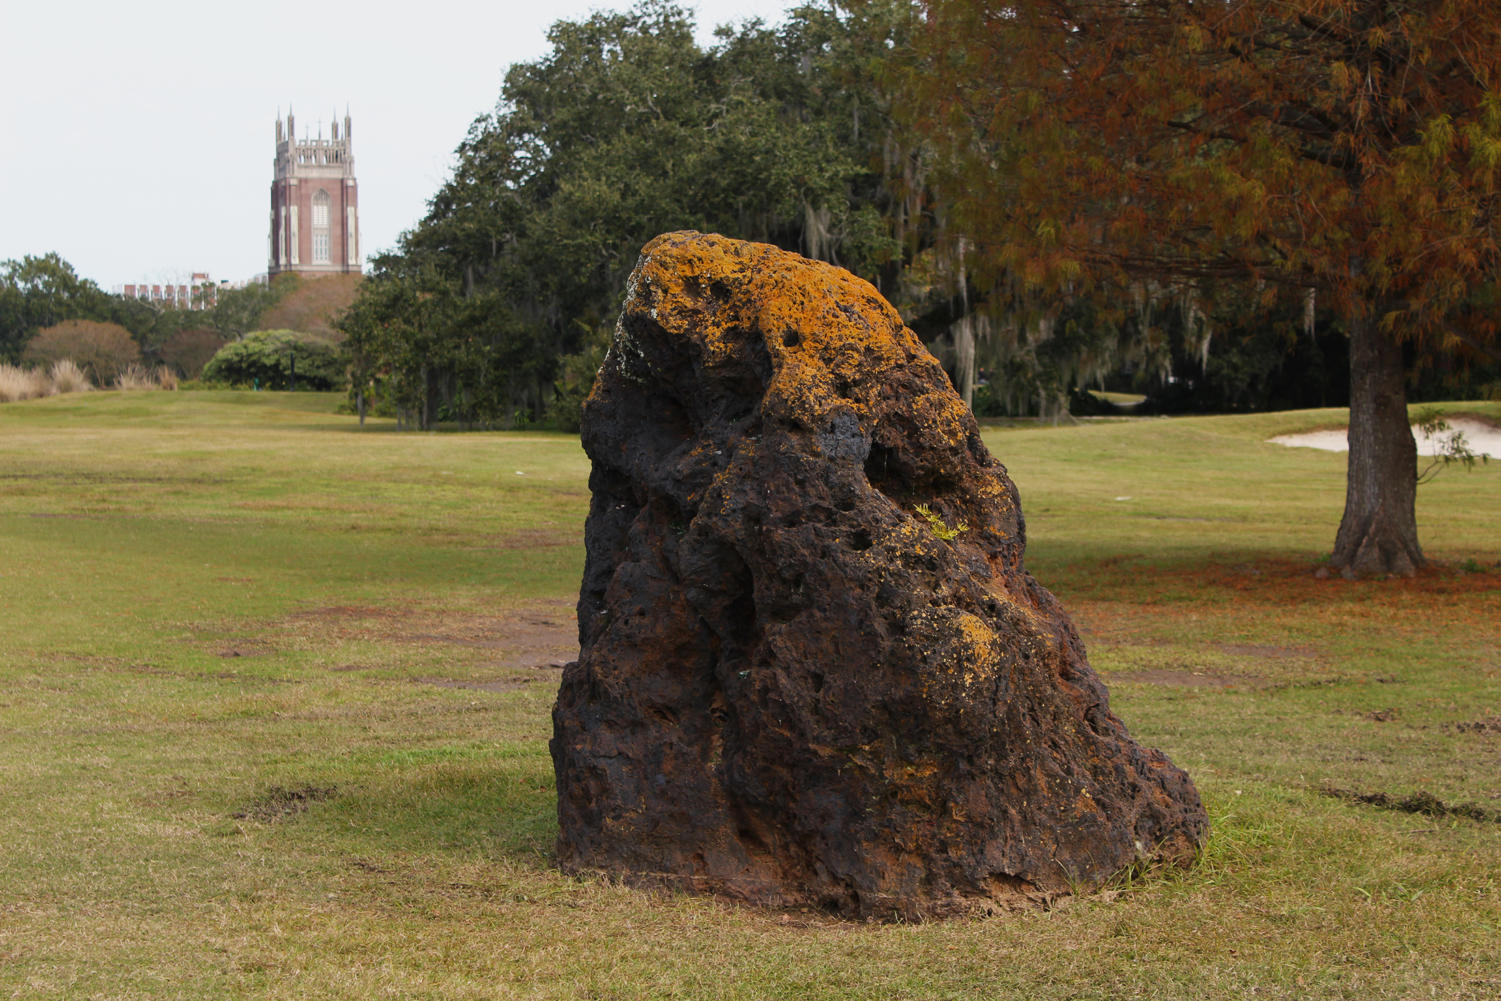 This iron ore rock in the Audobon Park Golf Course, commonly mistaken as a meteorite, is only survivng remant of the New Orleans's World Cotton Centennial. Photo credit: Cristian Orellana